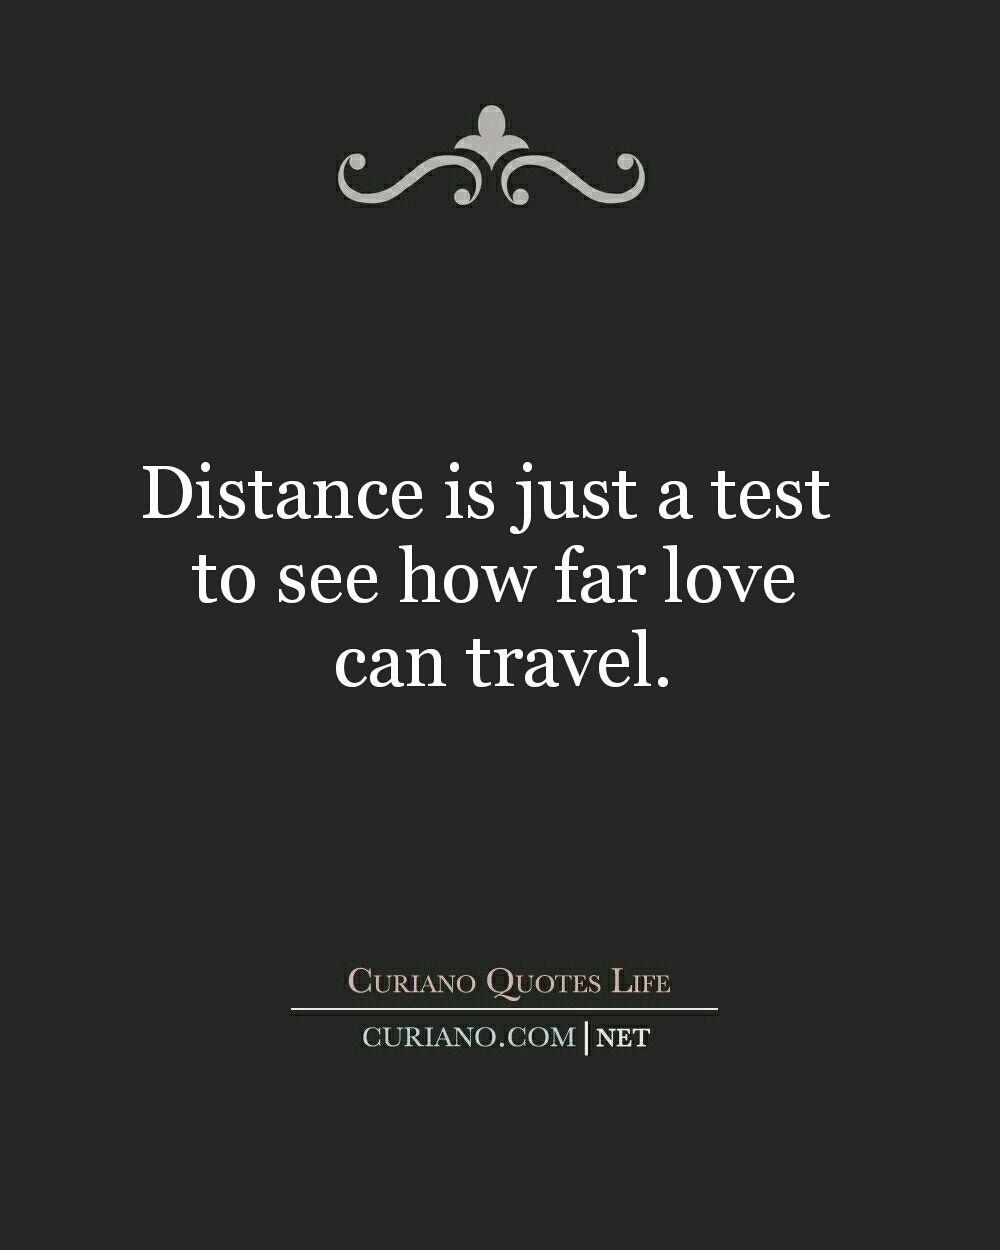 Quotes Moving On This Blog Curiano Quotes Life Shows Quotes Best Life Quote